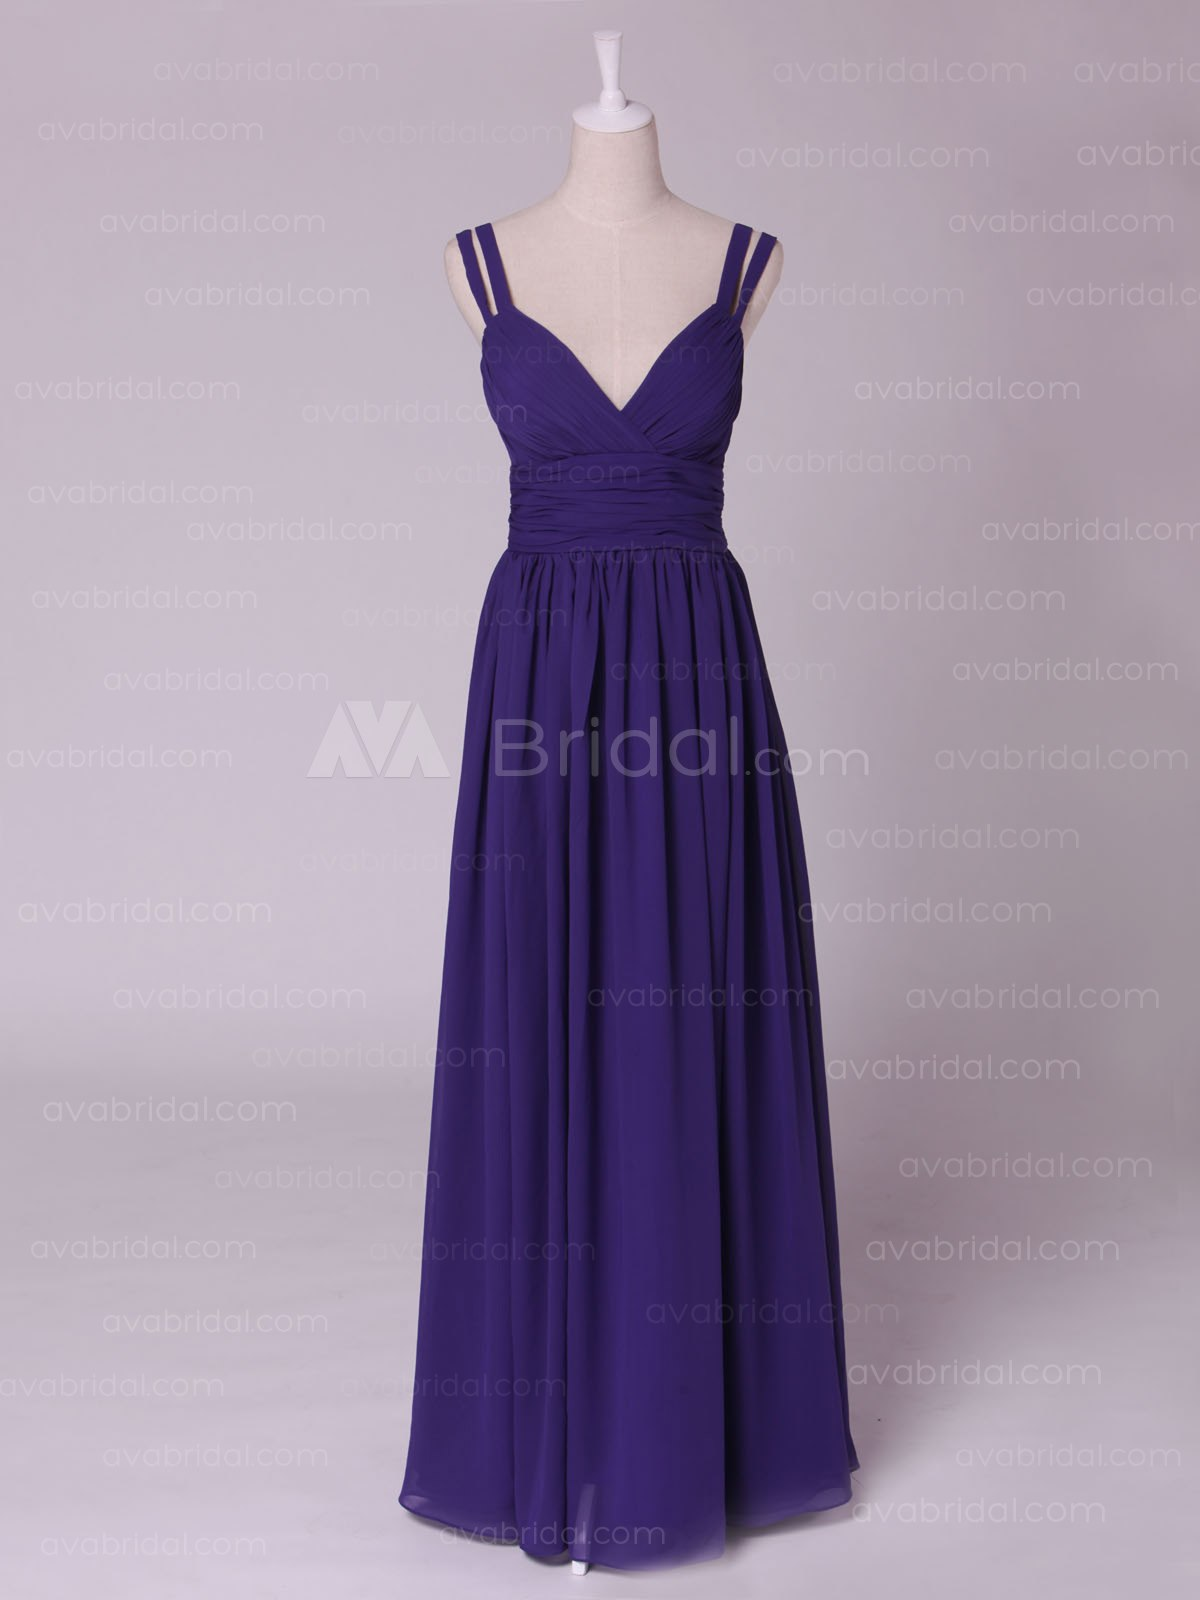 Chic Double Shoulder Straps Bridesmaid Dress B459-Front